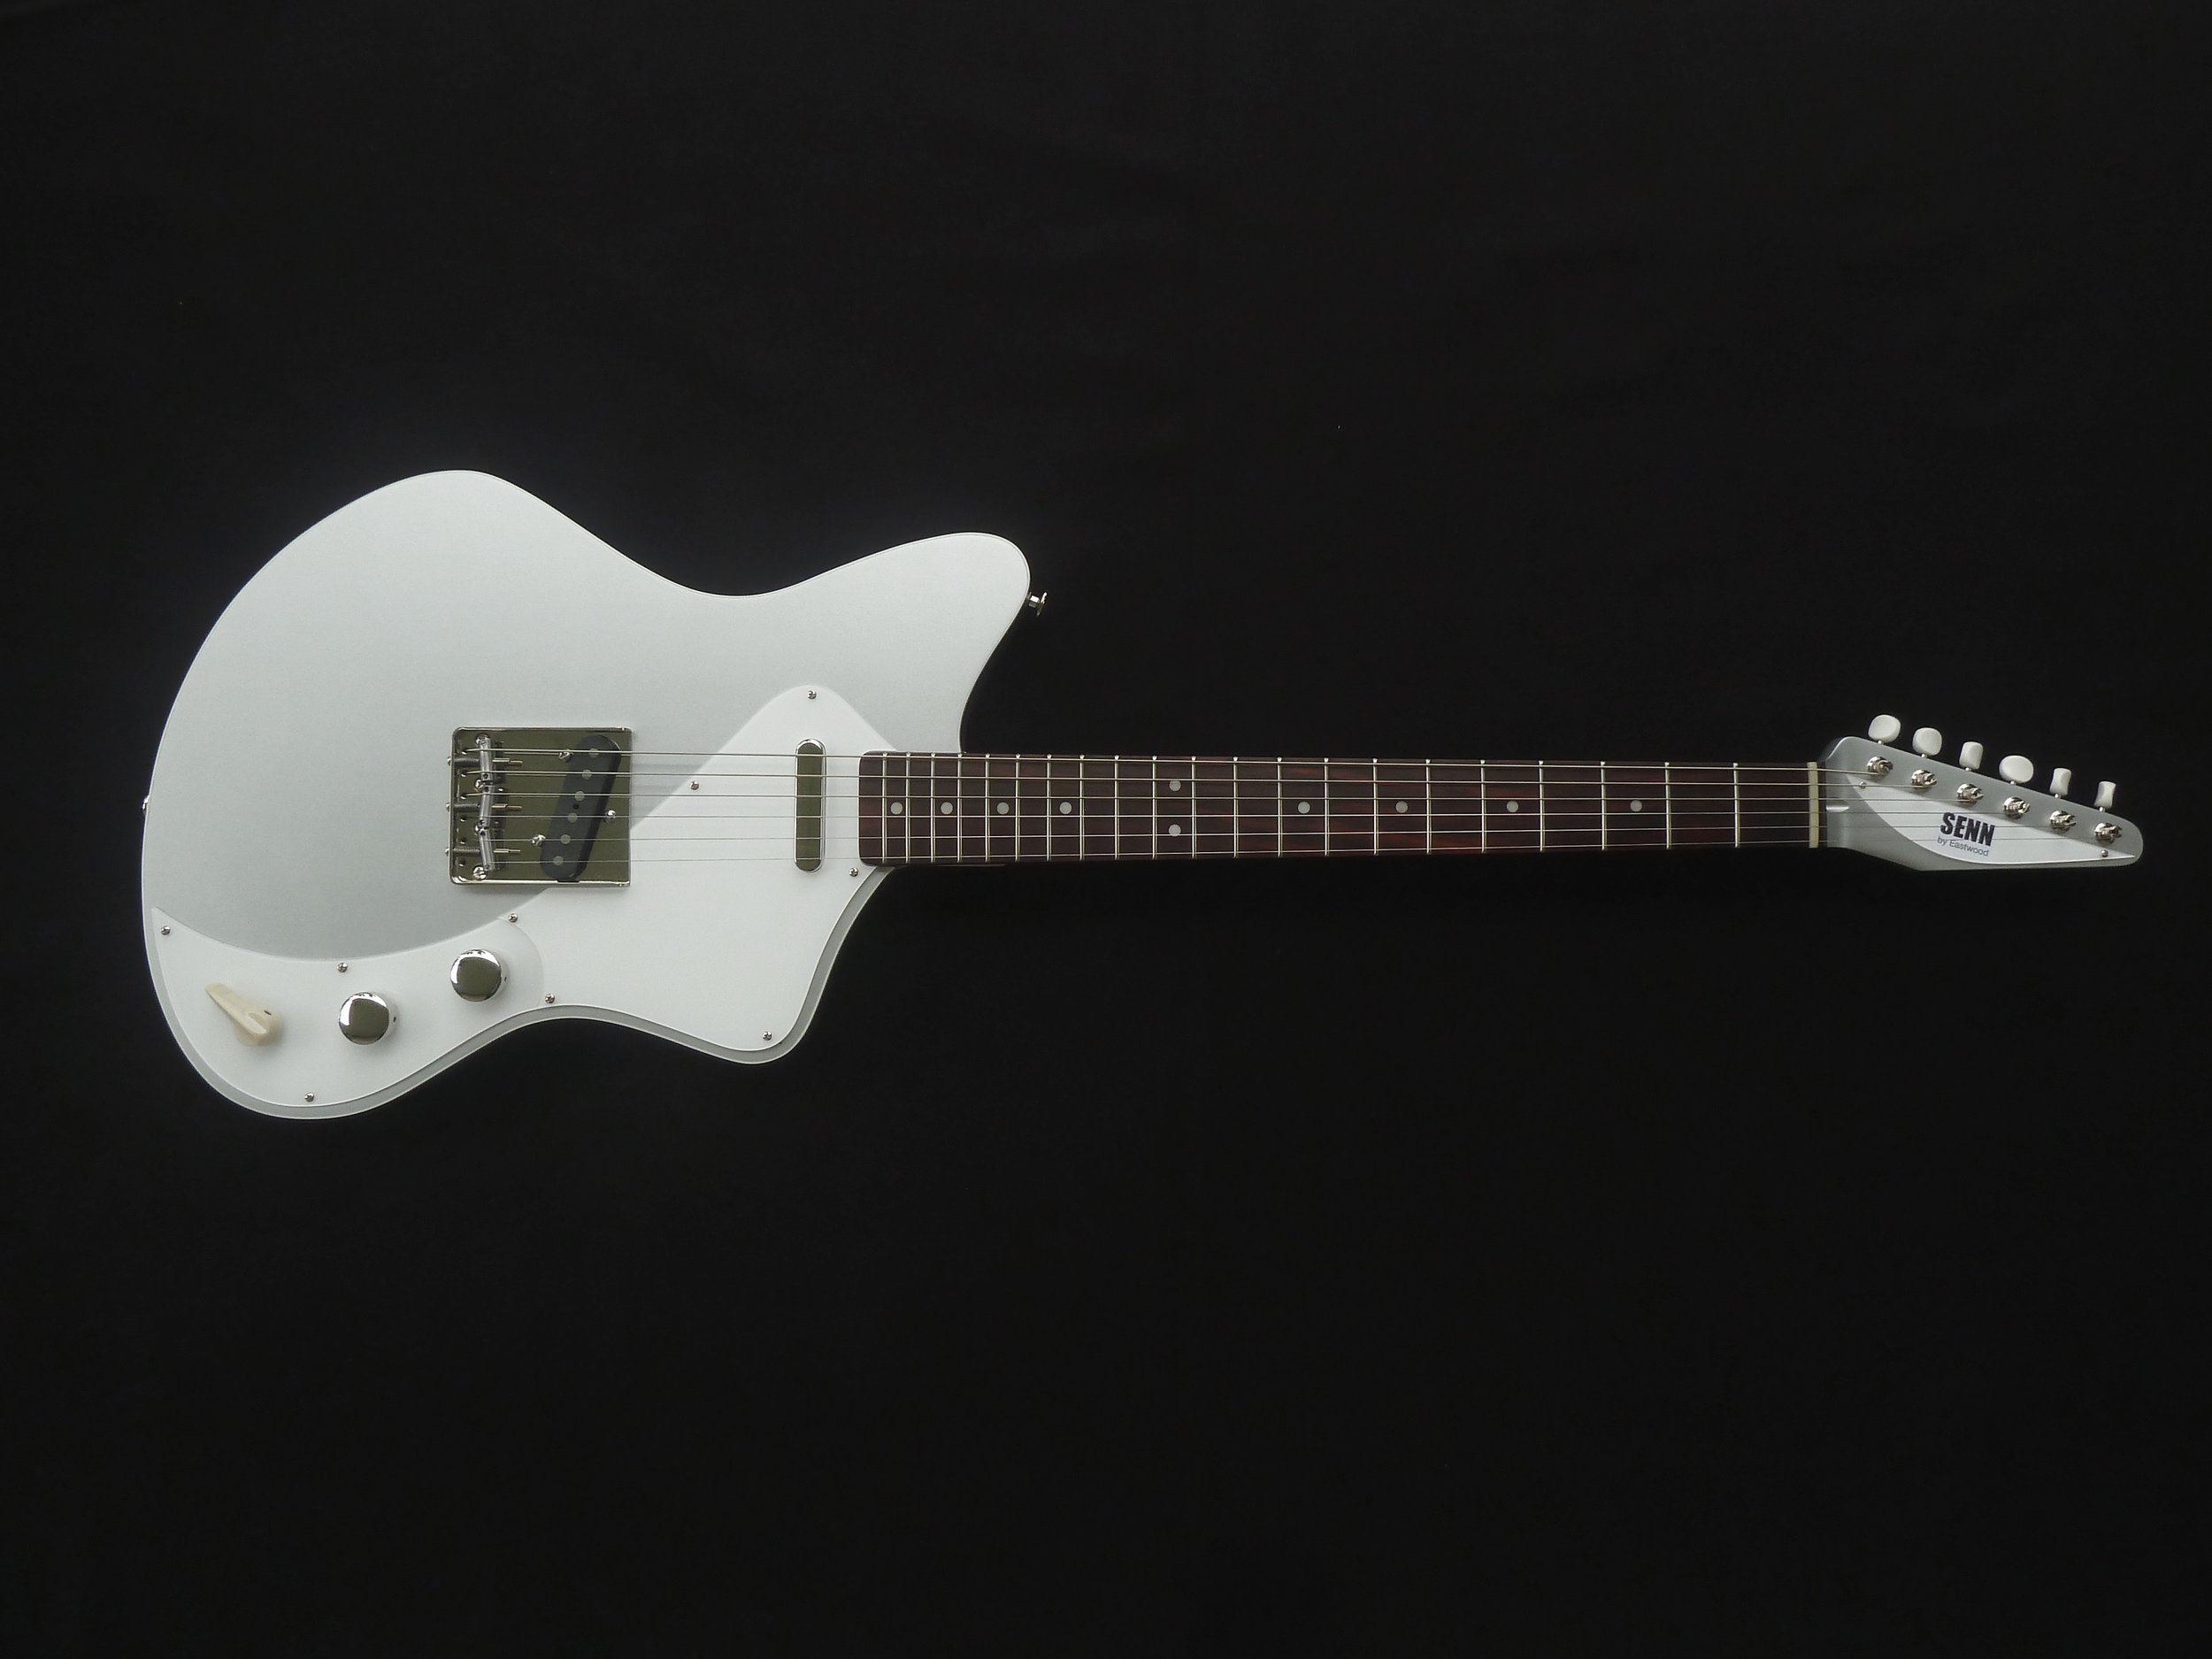 Senn By Eastwood - Click here for info and to purchase Senn by Eastwood guitars